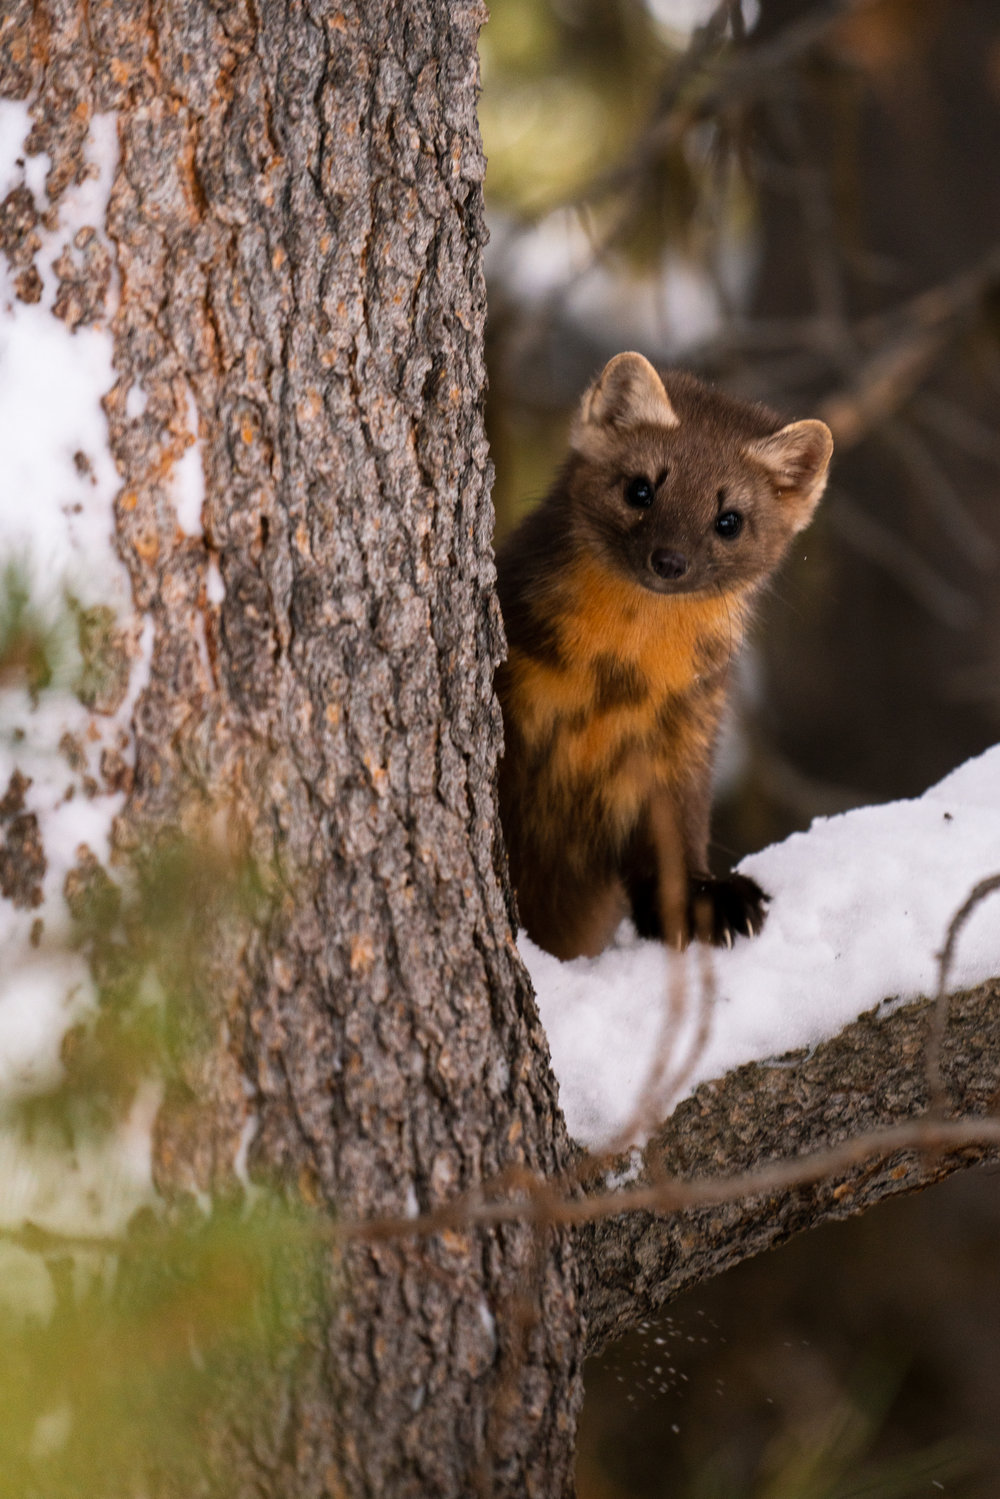 A pine marten in Yellowstone National Park.